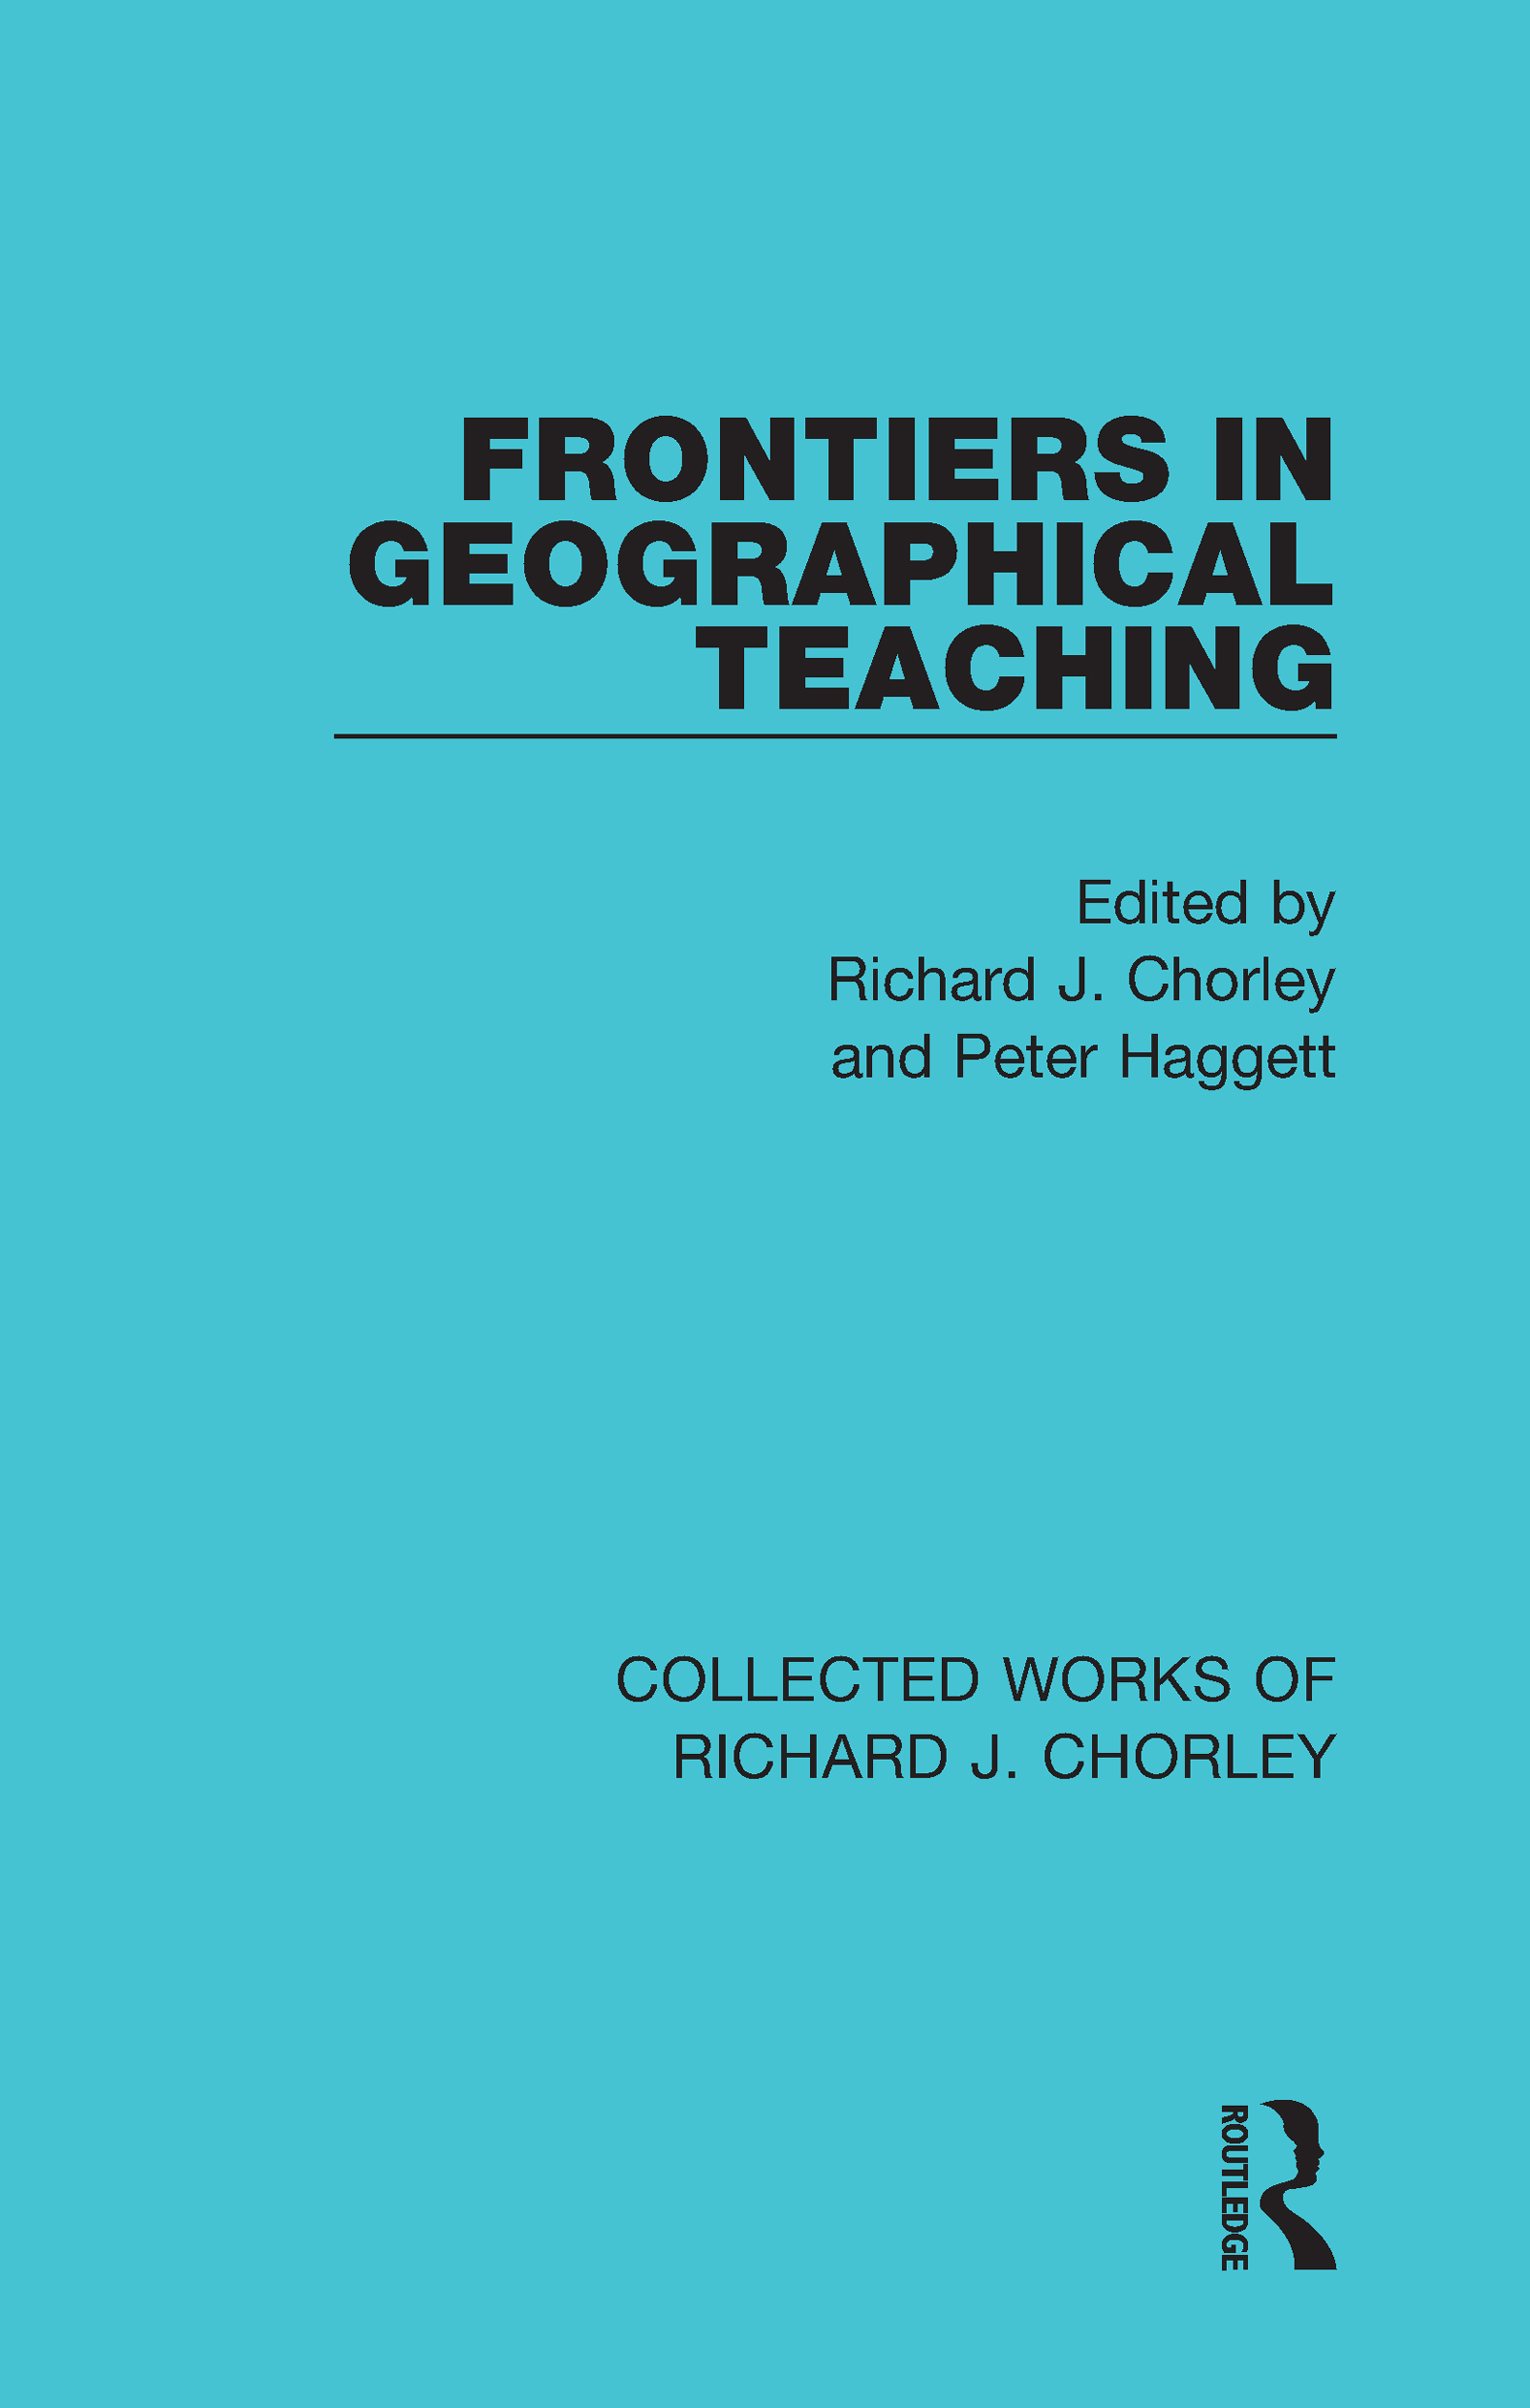 Frontiers in Geographical Teaching